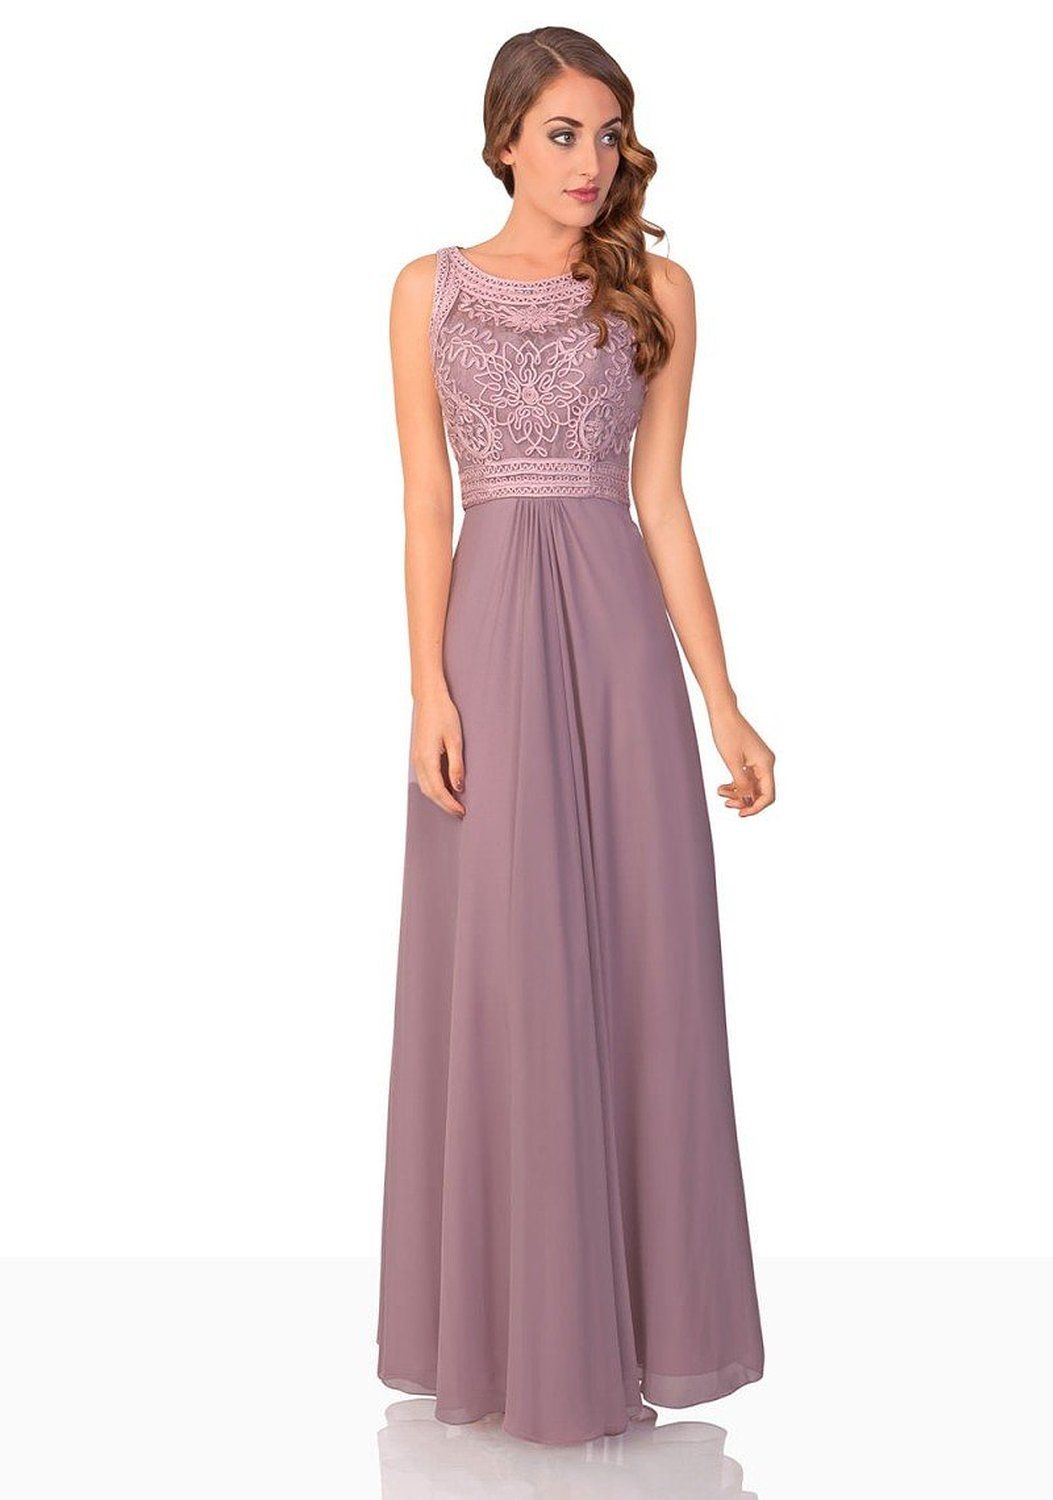 VIP Dress Abendkleid Chiffon / langes Ballkleid / Jugendweihekleid ...